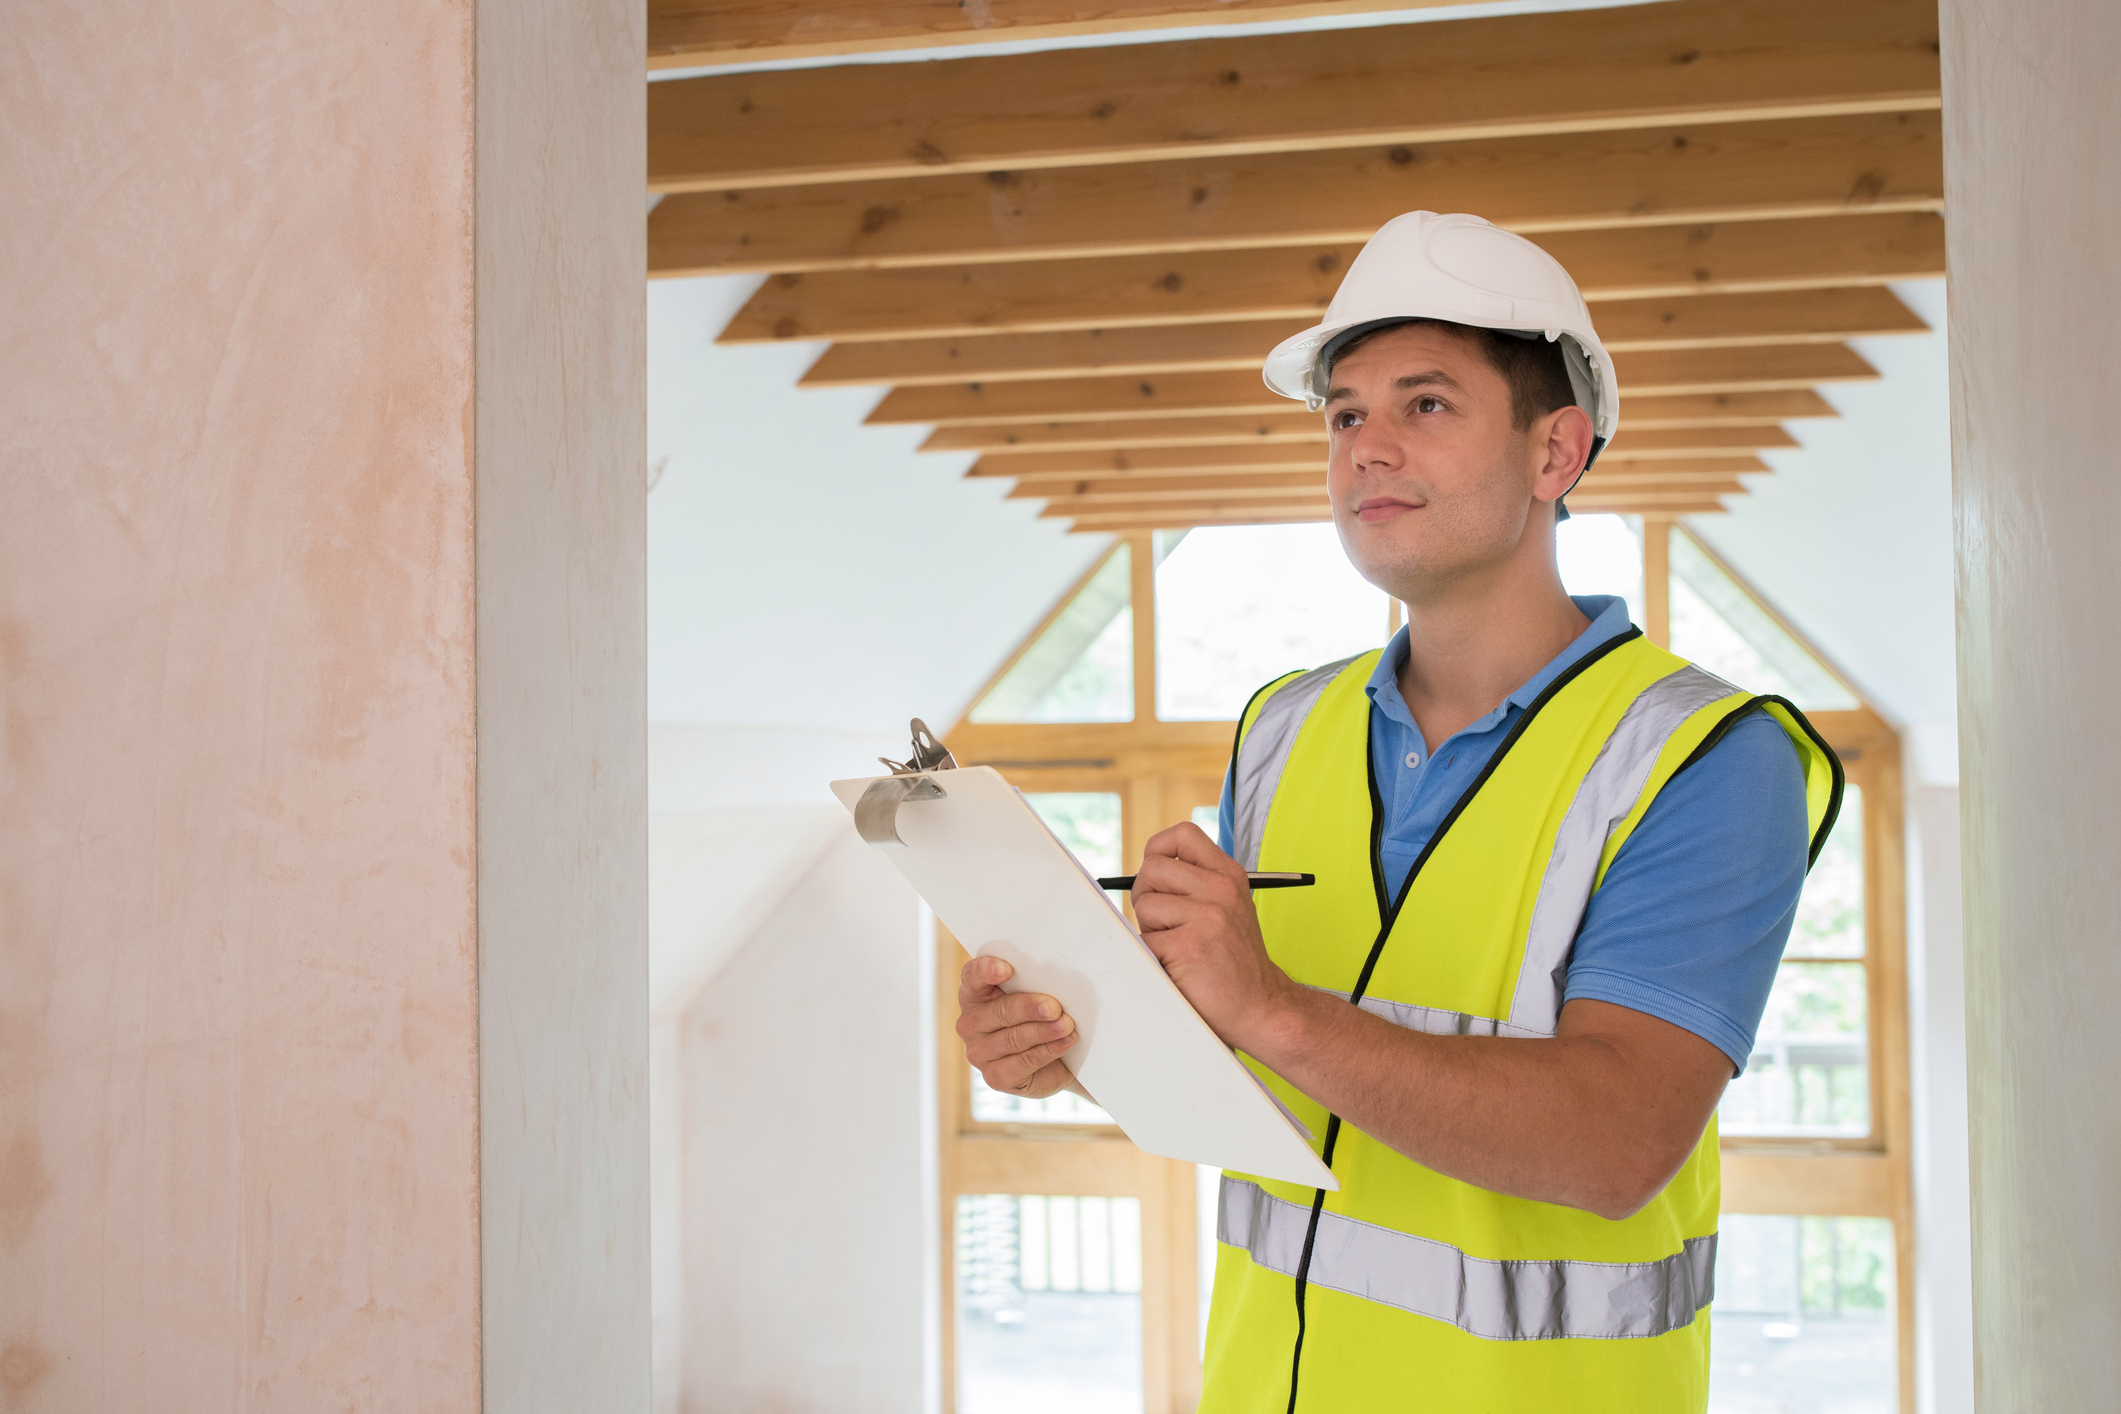 Building Inspector checking a New Property